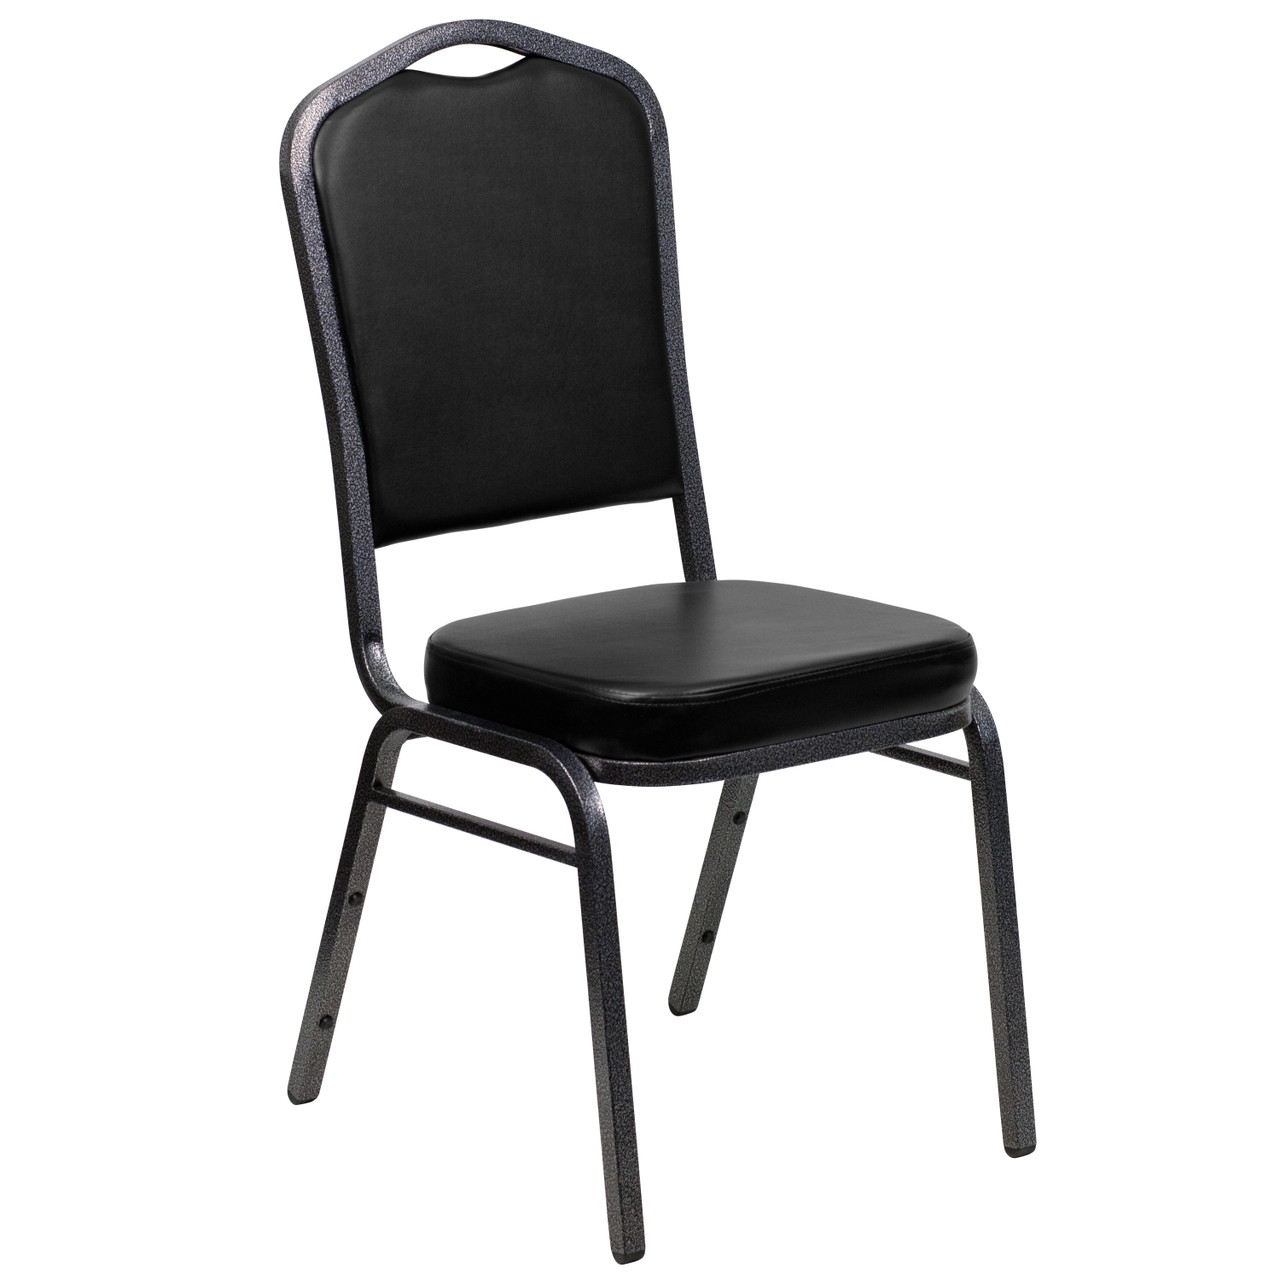 Banquet Chairs Black Vinyl Crown Back Stacking Chairs